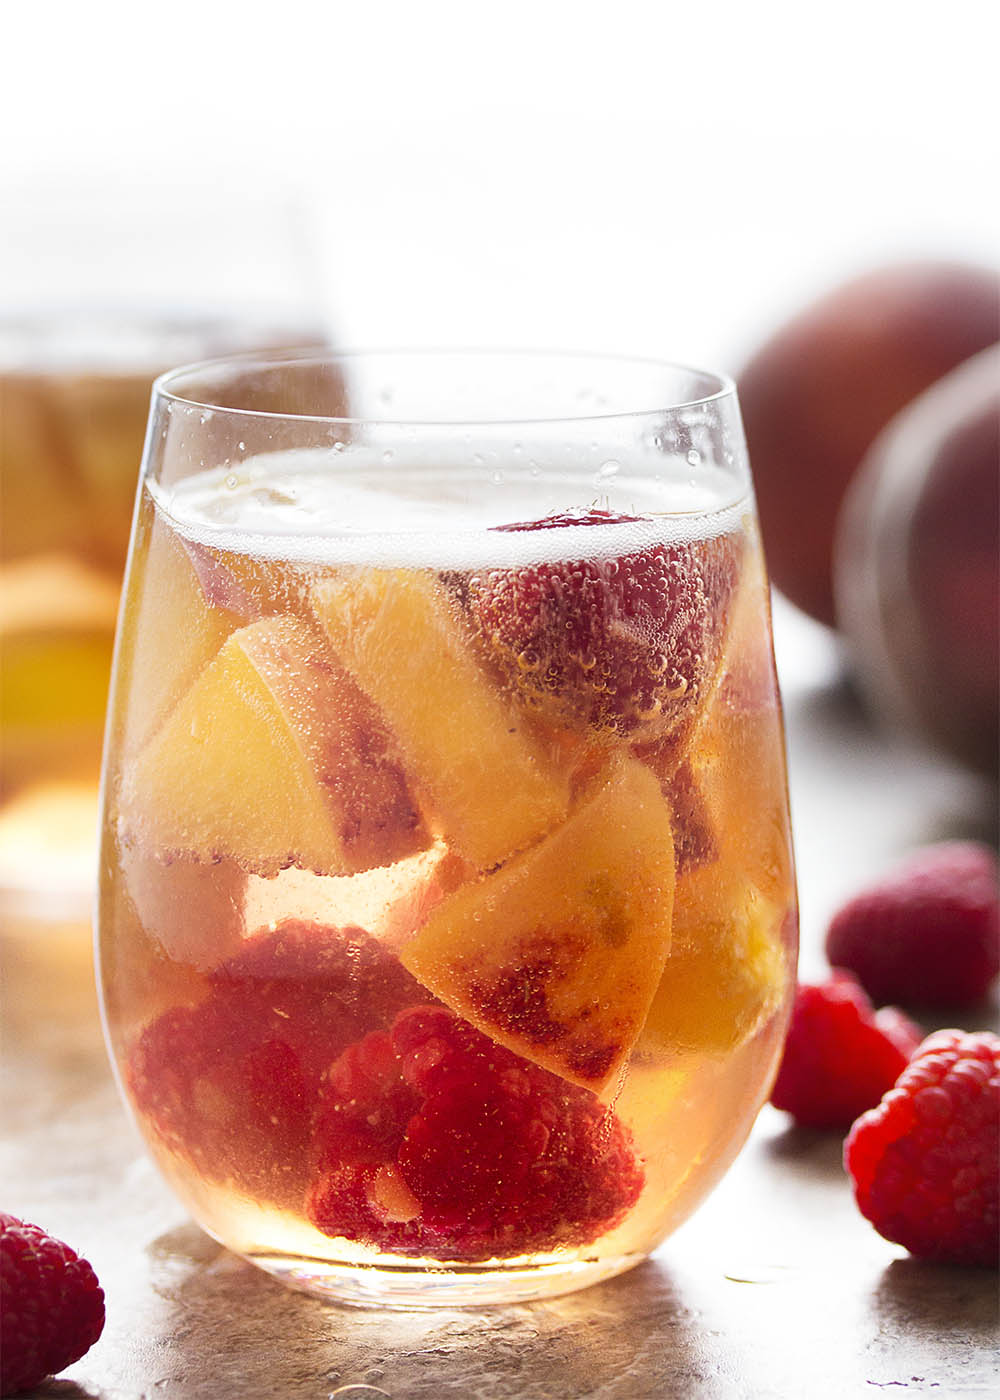 This sparkling white peach sangria is super easy to mix together and just as easy to enjoy on a warm day. Not too sweet and full of fizz from the bubbly, it's the taste of summer in a glass! | justalittlebitofbacon.com